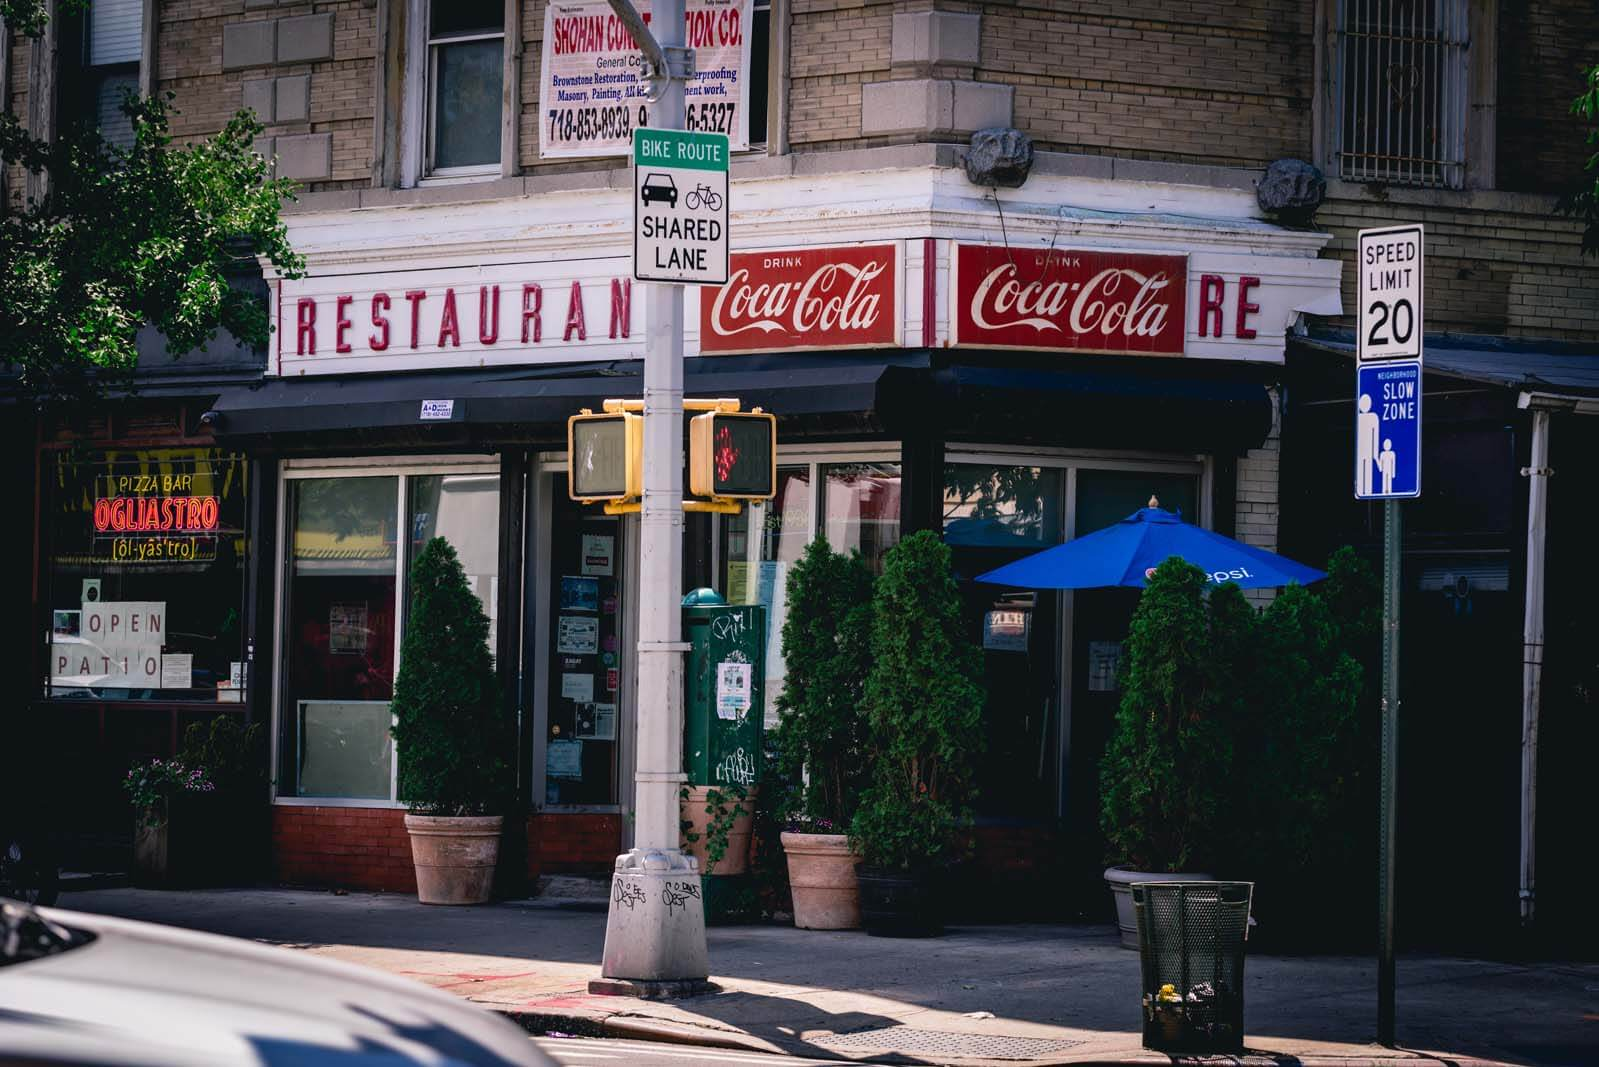 Toms Diner in Prospect Heights Brooklyn